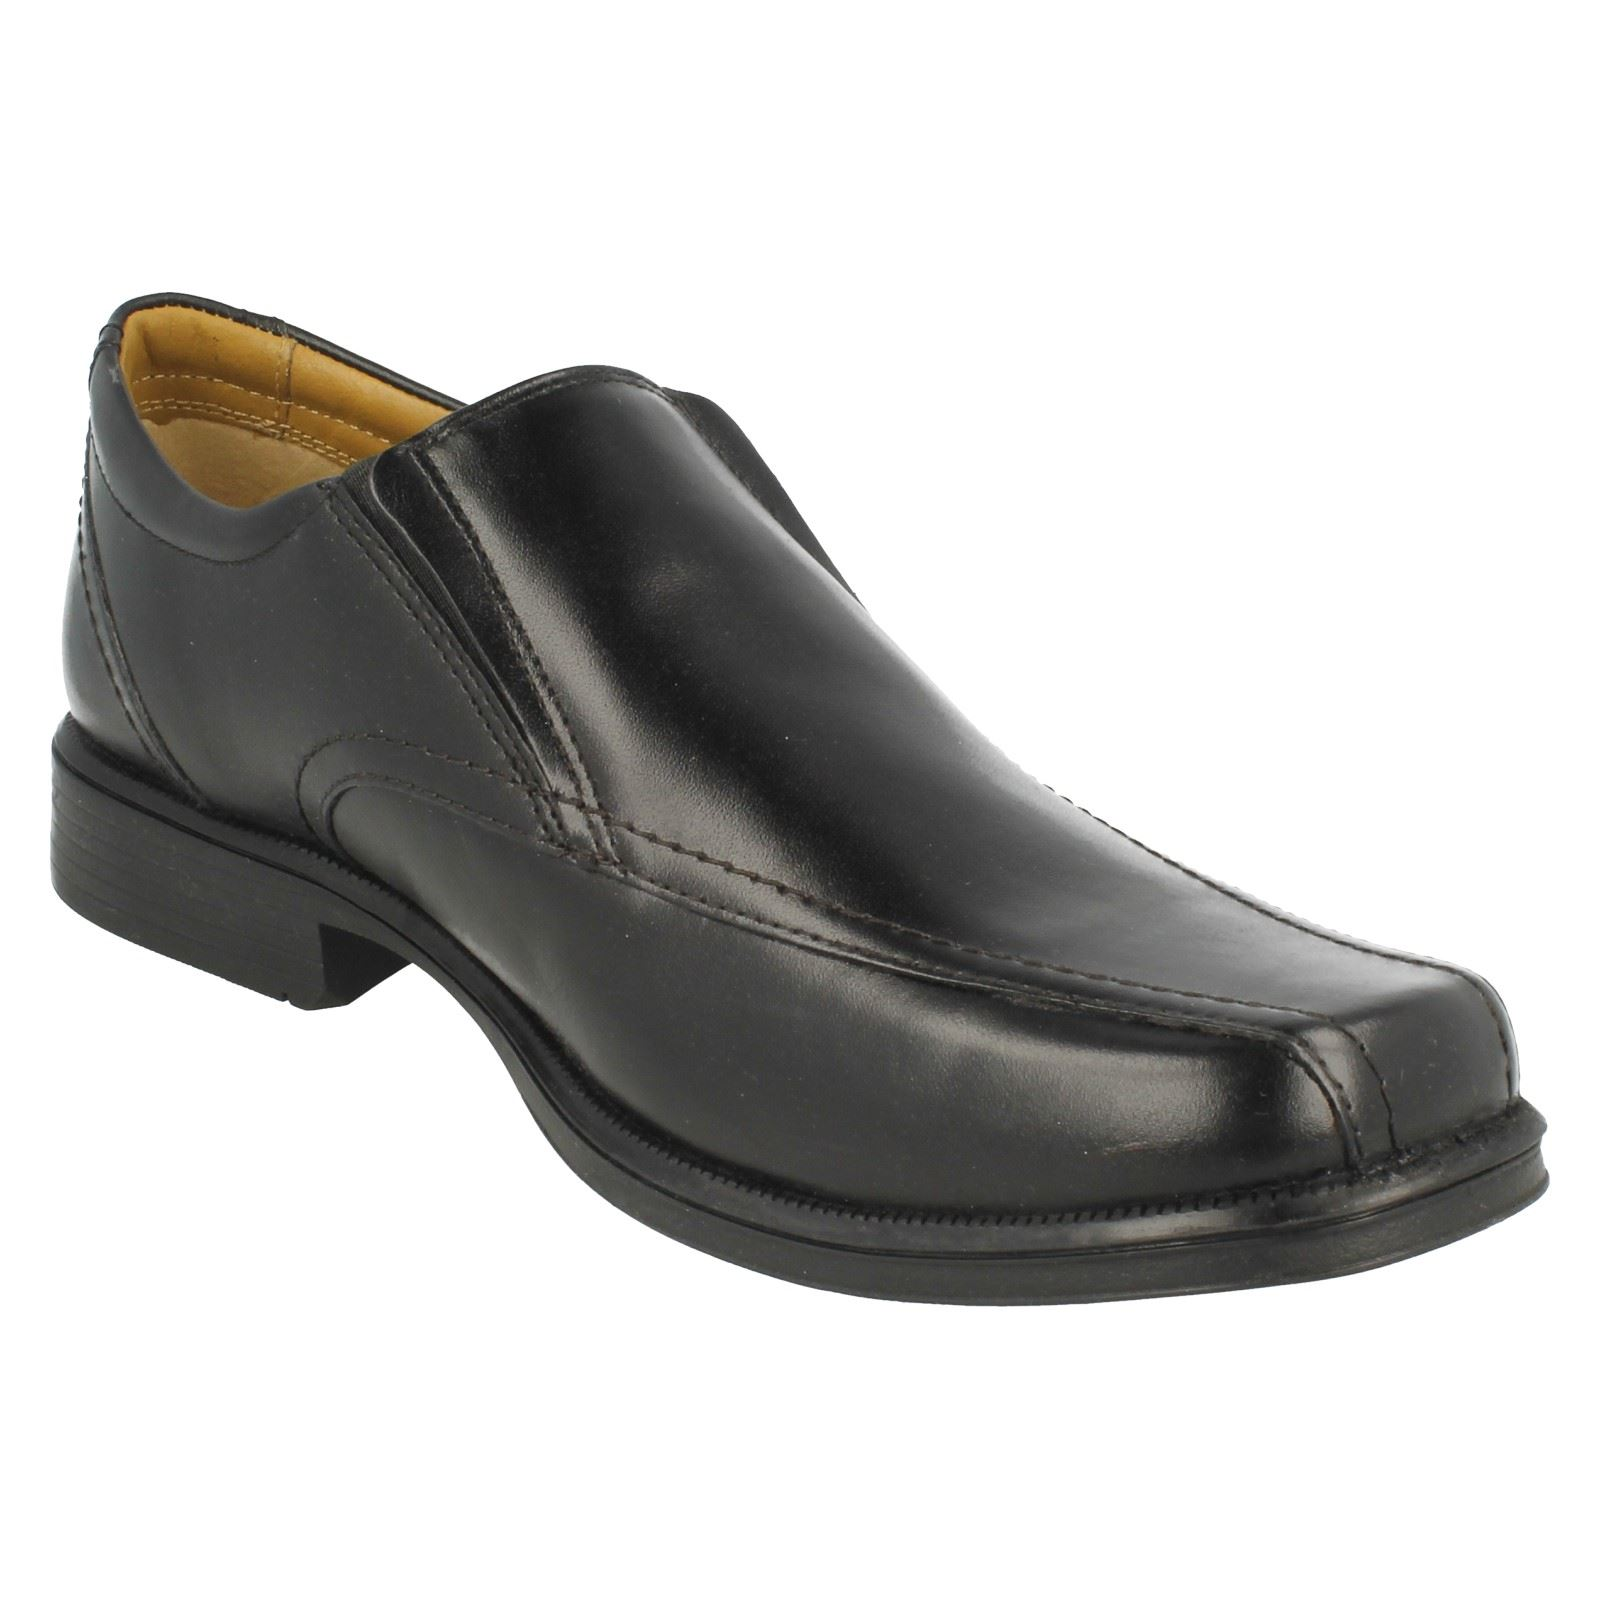 Mens Clarks Slip On Shoes Hatche Tough